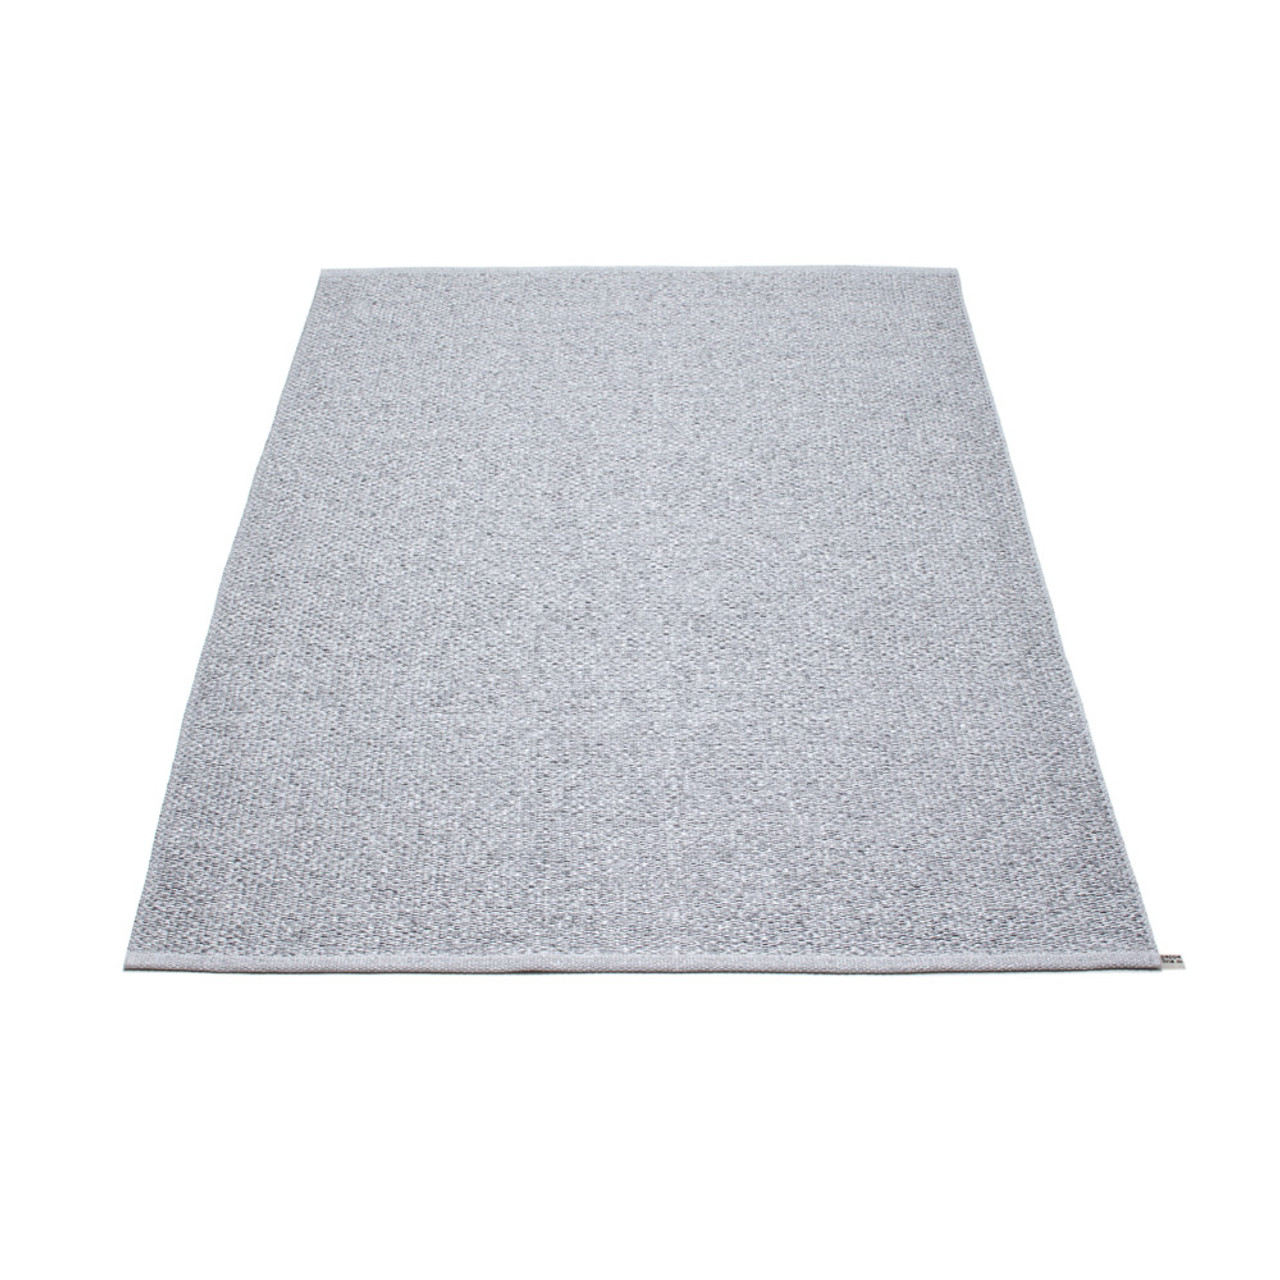 6 X 8 1 2 Ft Svea Area Rug With Double Hemmed Edges Multiple Color